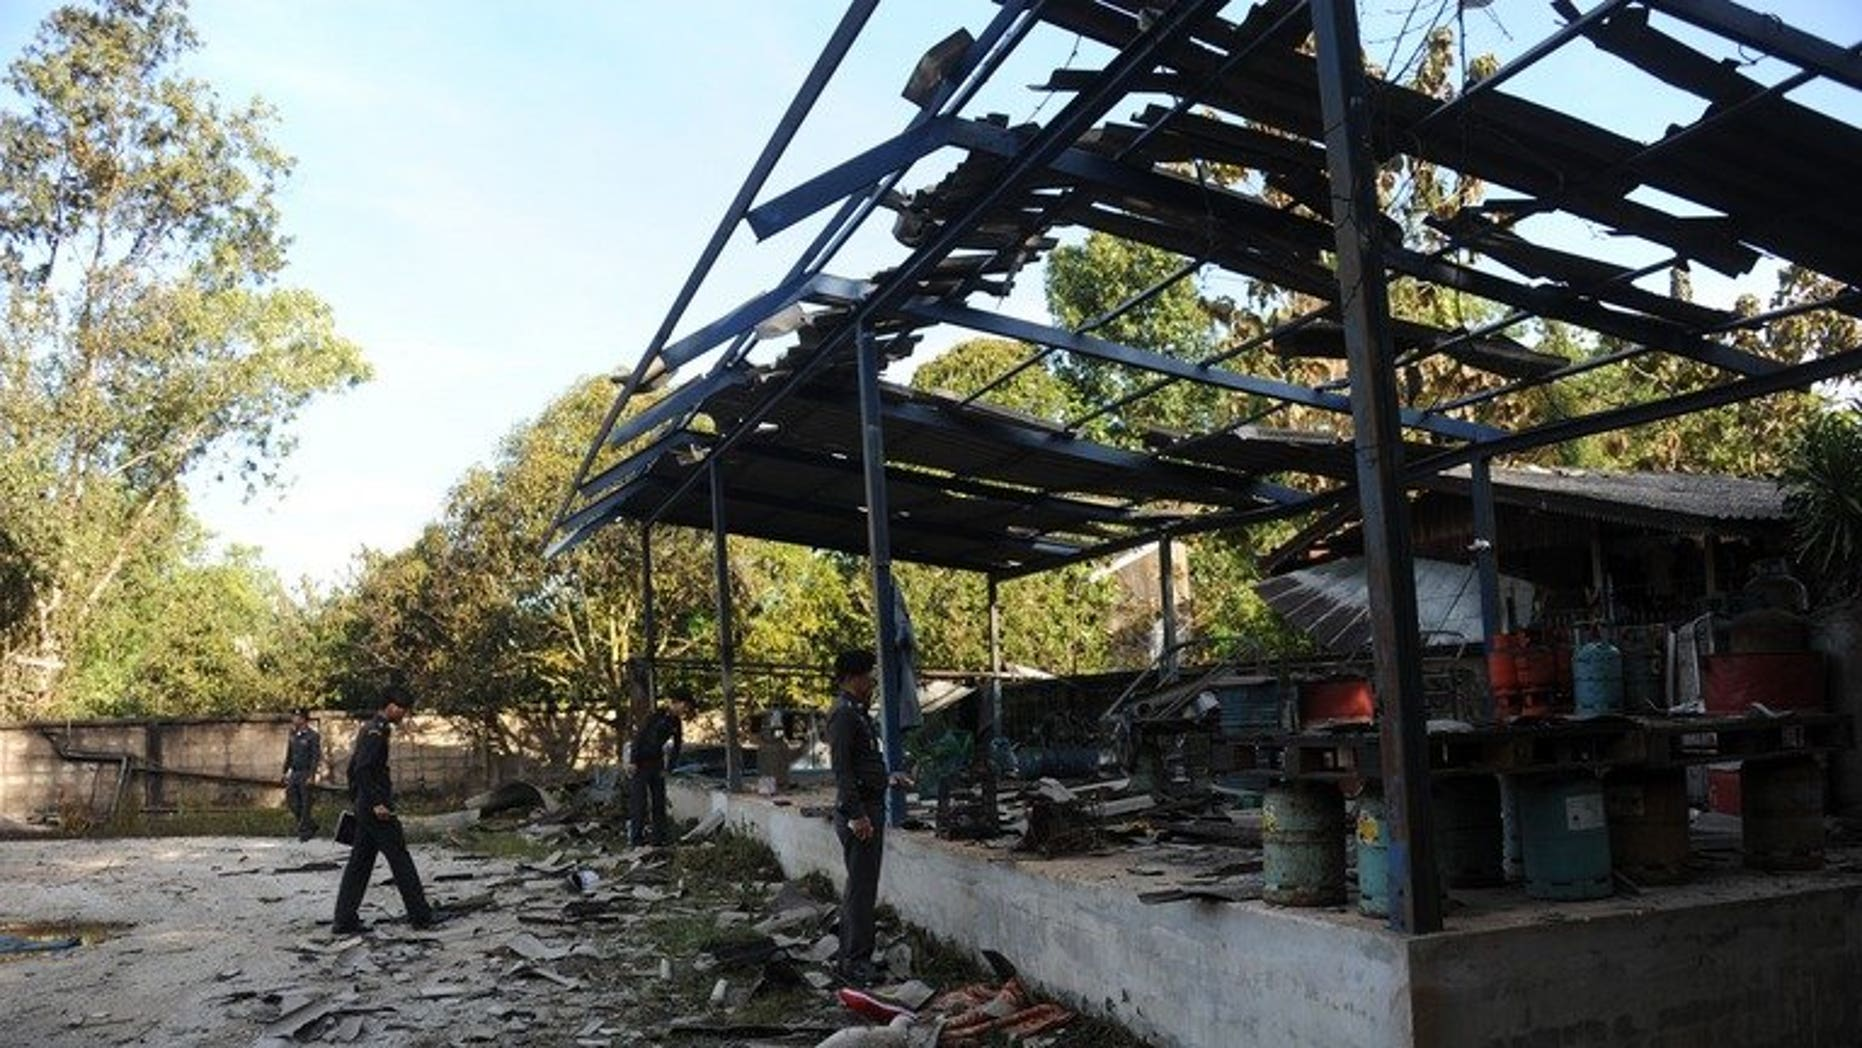 Thai police inspect a gas factory after a bomb blast in the restive southern province of Narathiwat, on August 11, 2013. A policeman has been killed and nine other people wounded in a bomb attack in Thailand's insurgency-hit deep south, as authorities vowed talks with rebels will continue.